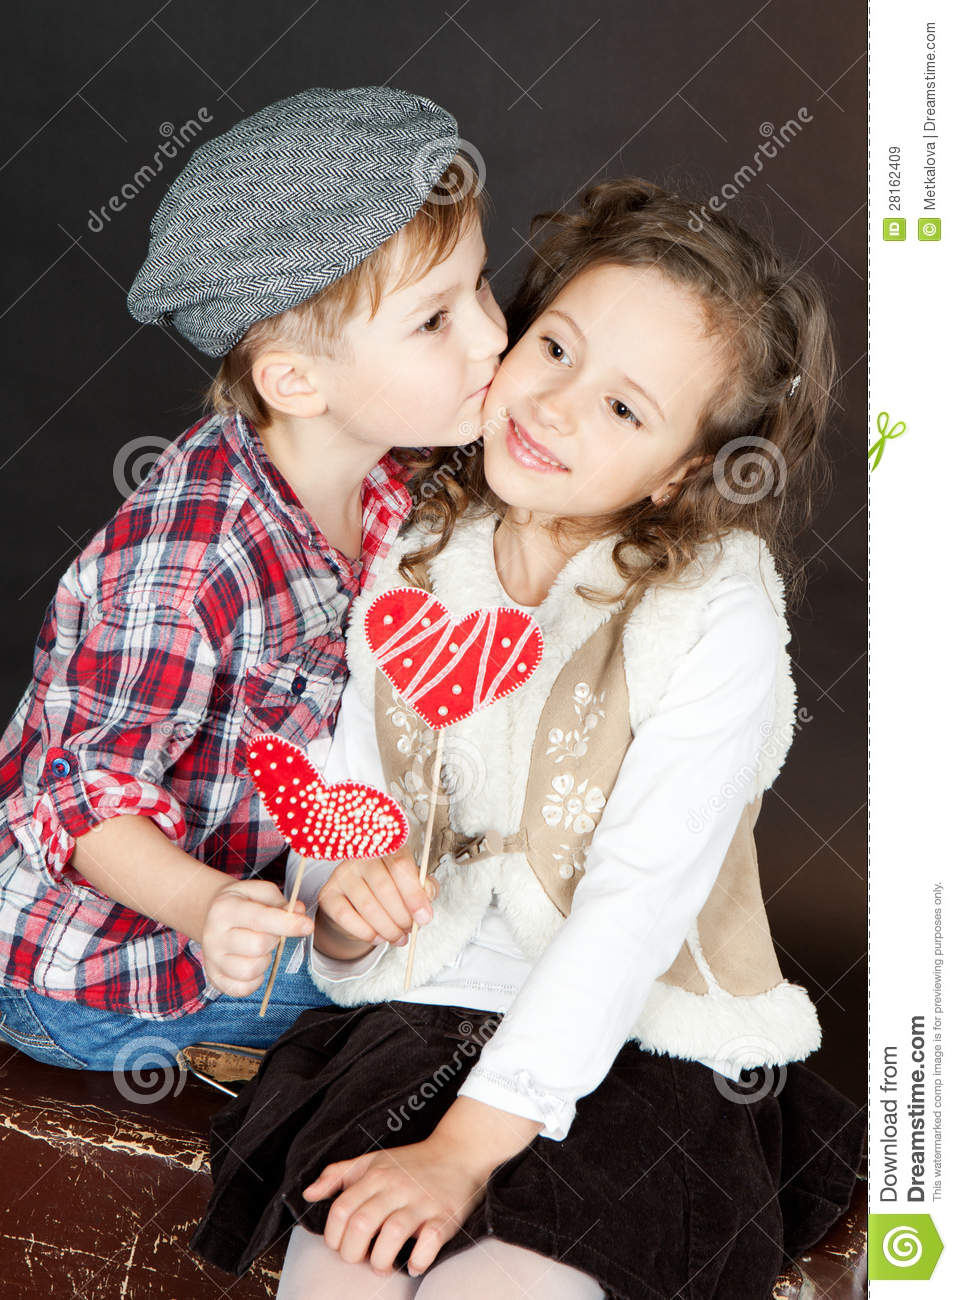 cute Love Girl And Boy Wallpaper : Funny Little couple In Love Stock Image - Image: 28162409